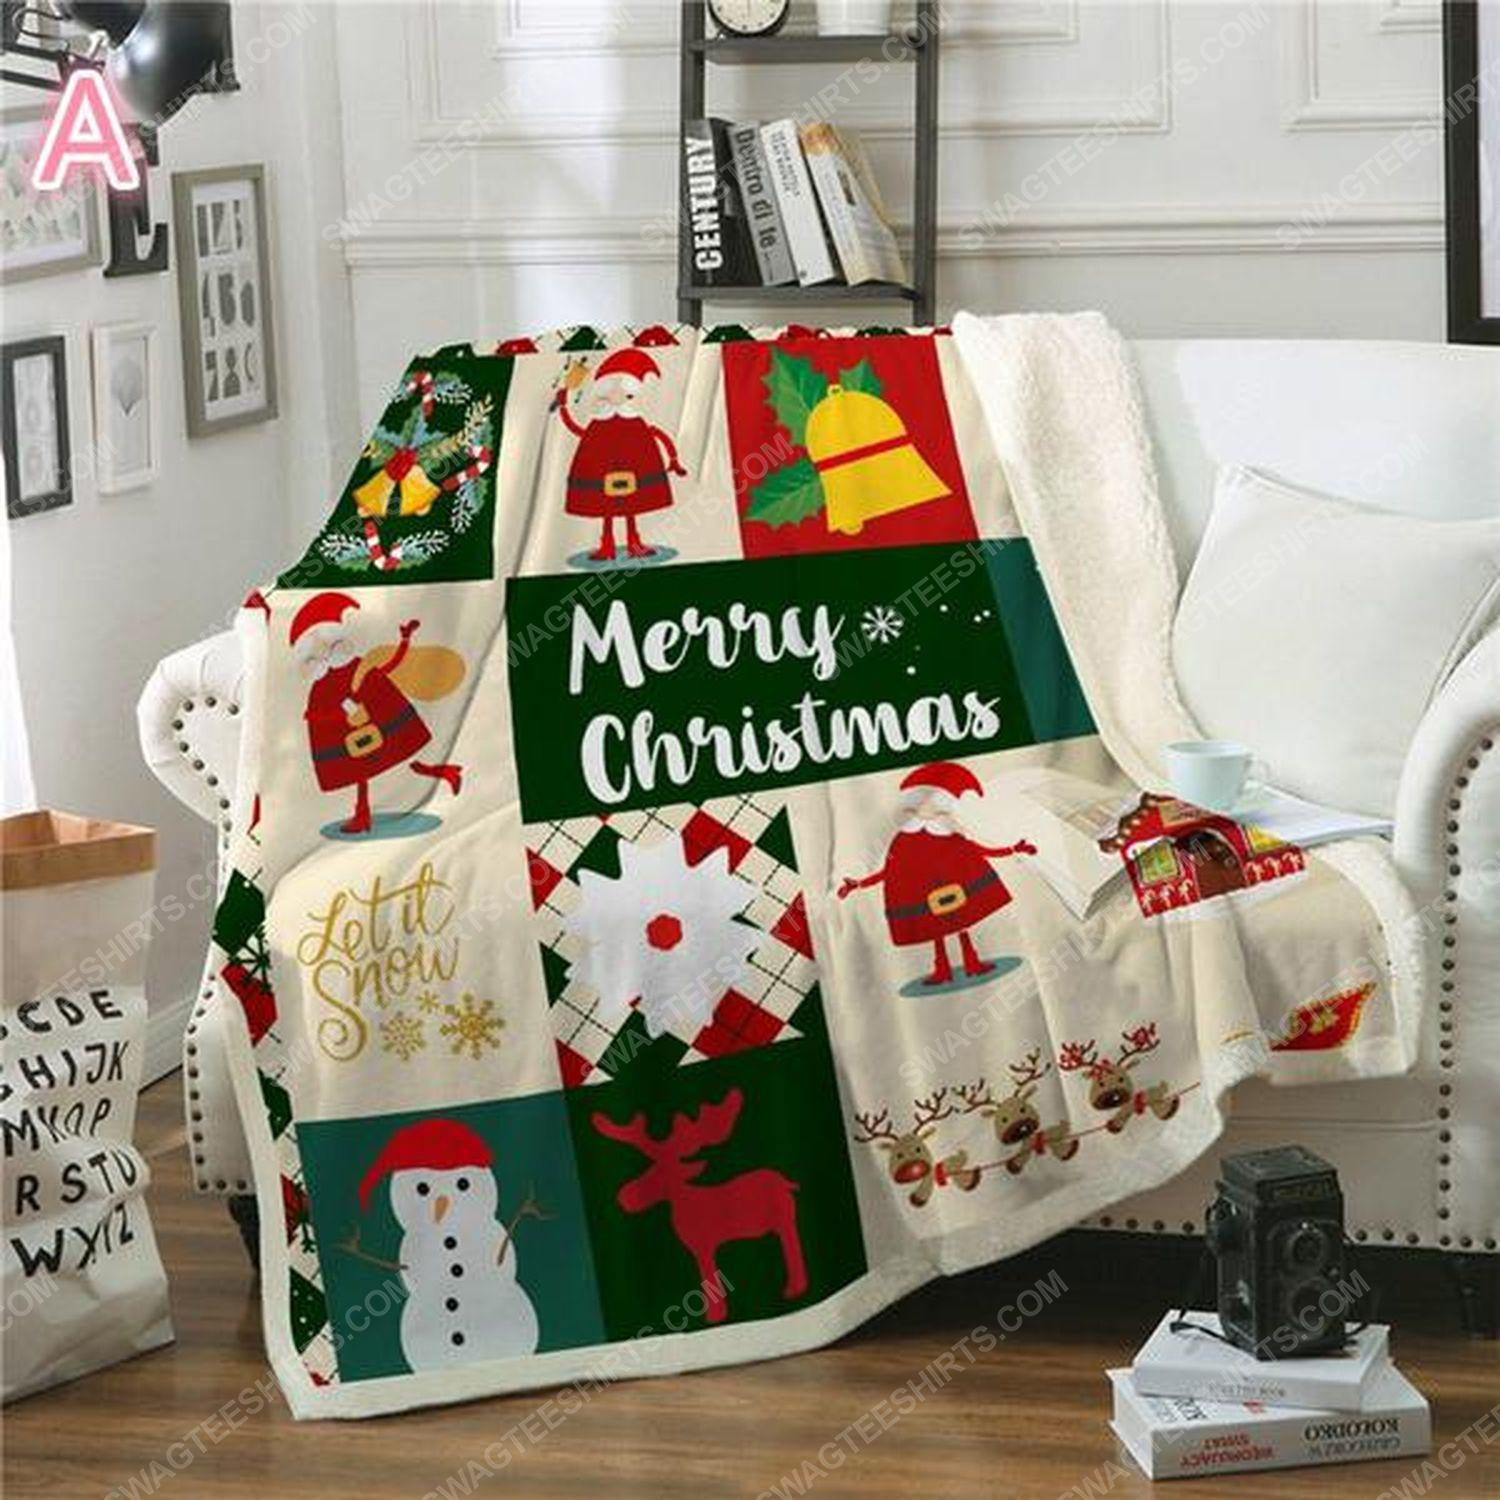 Merry christmas and let it snow blanket 2 - Copy (2)